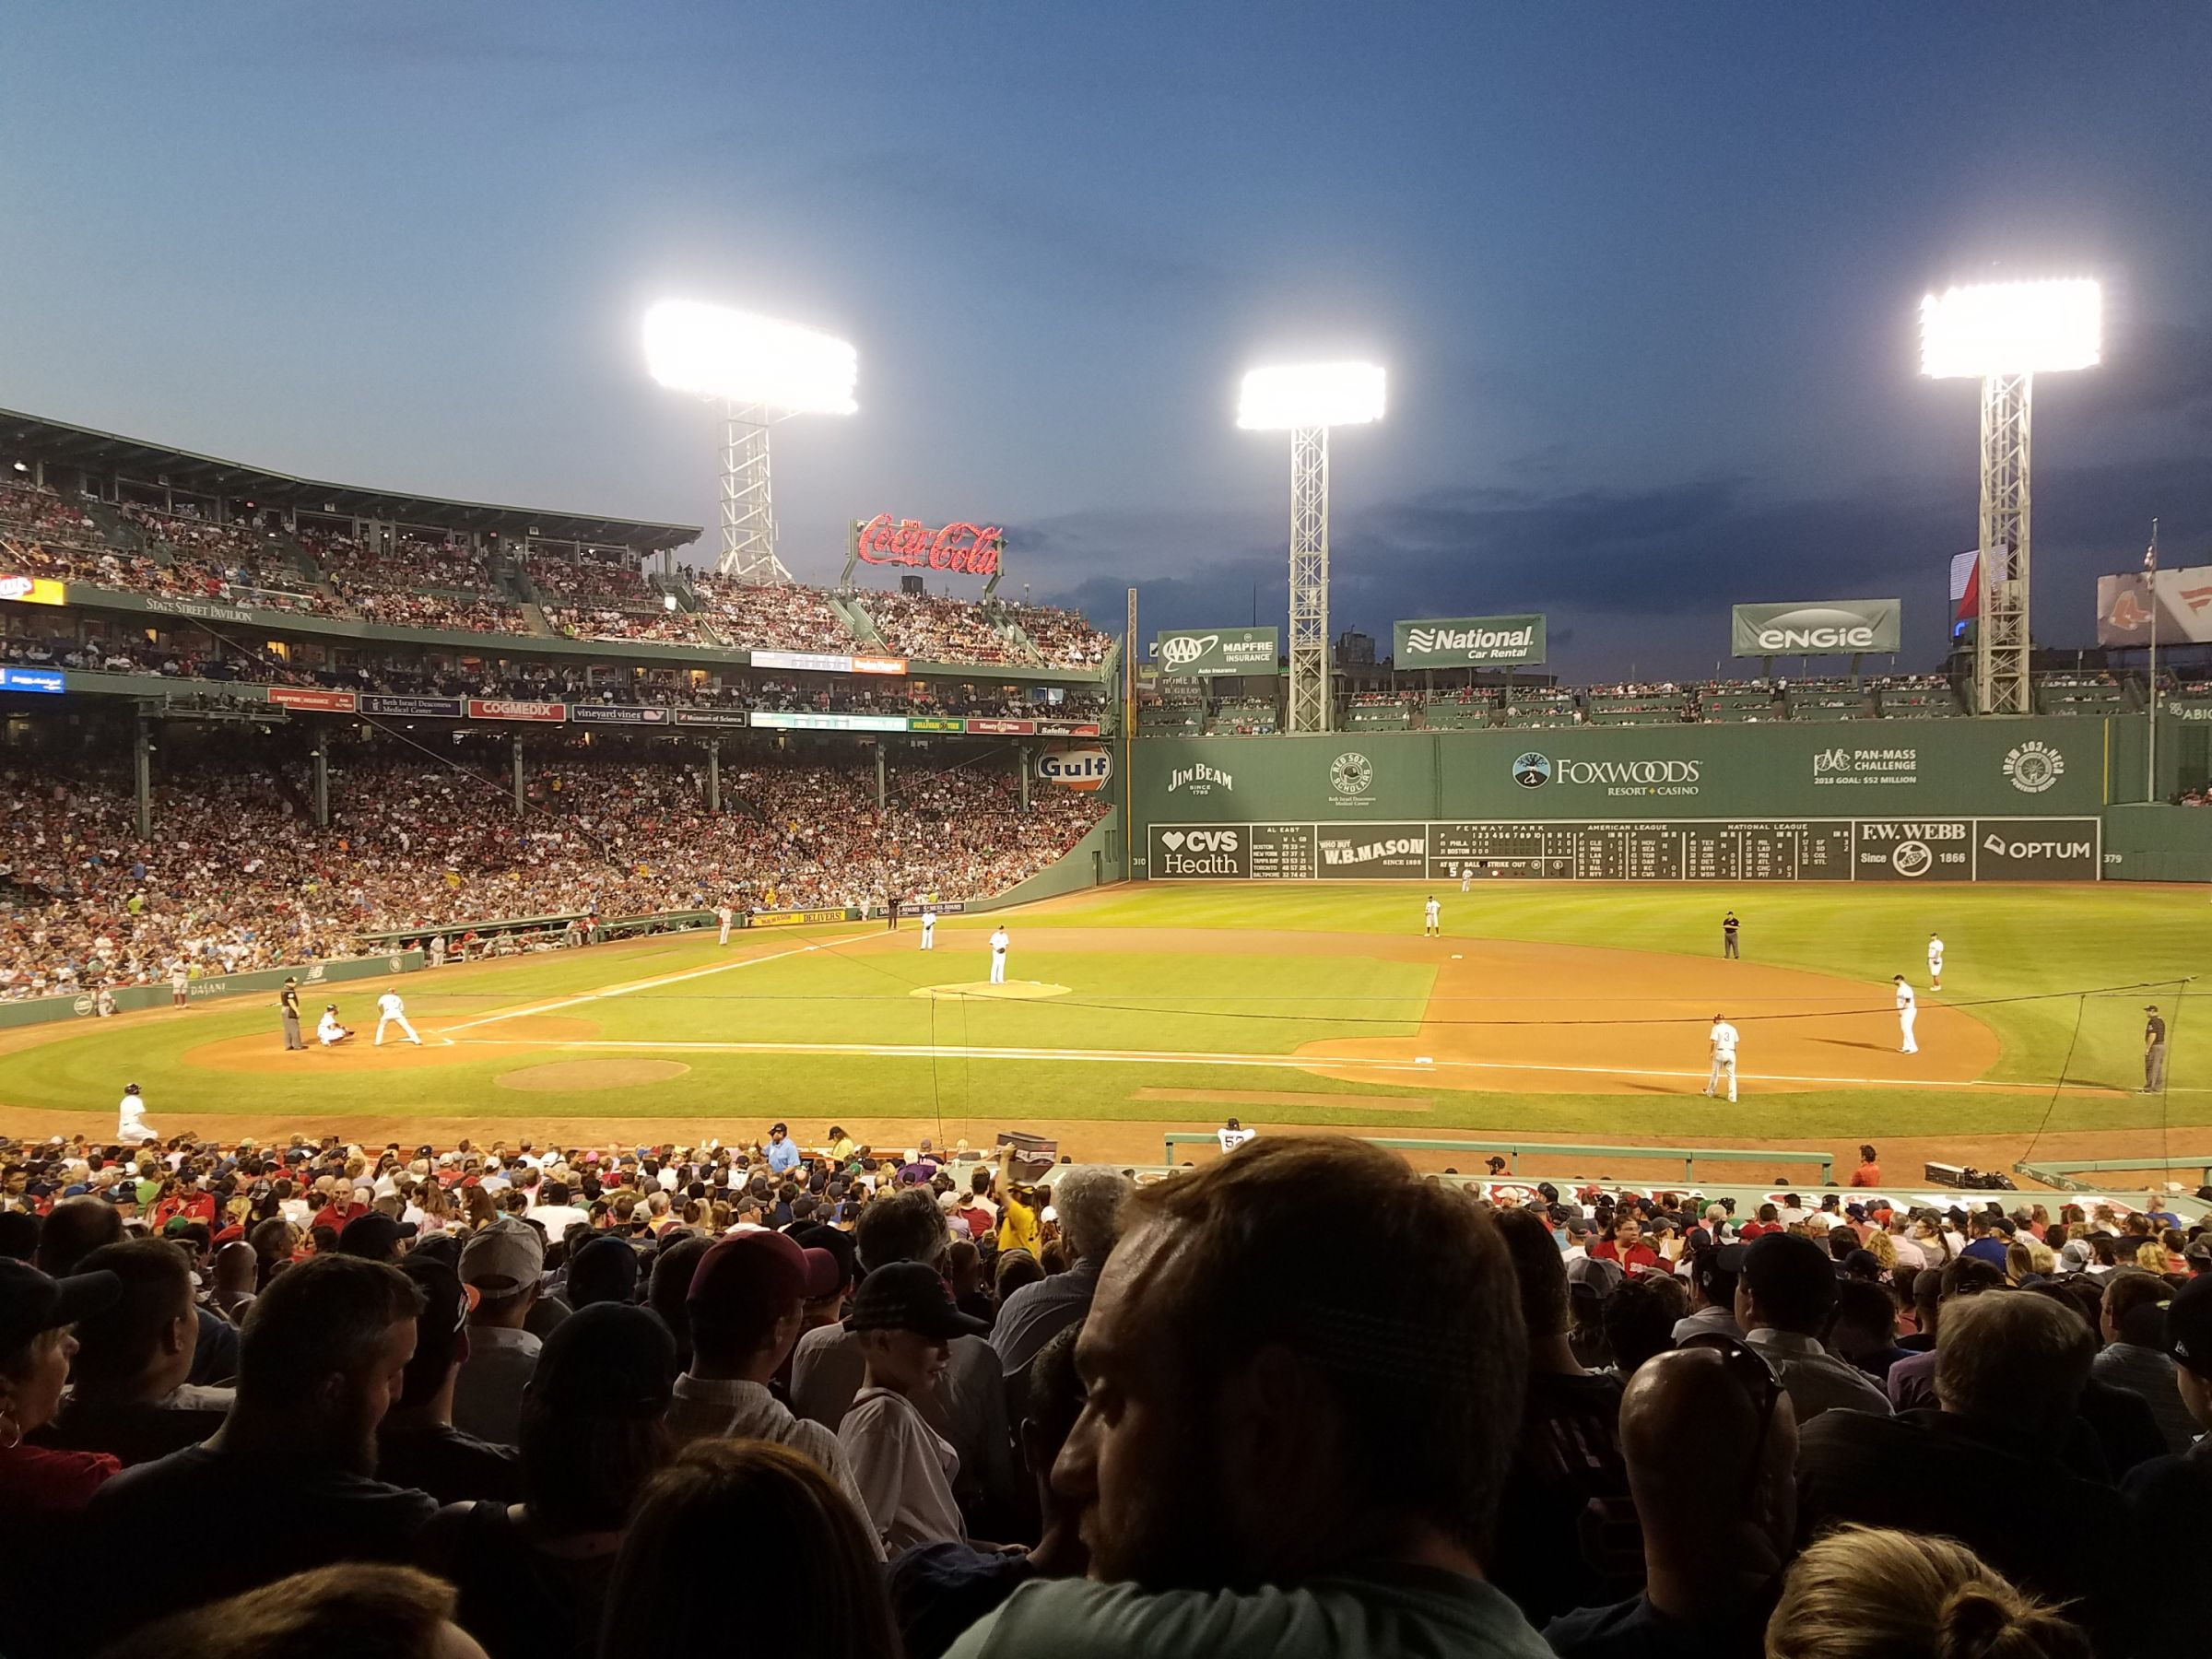 Seat View for Fenway Park Grandstand 15, Row 4, Seat 7